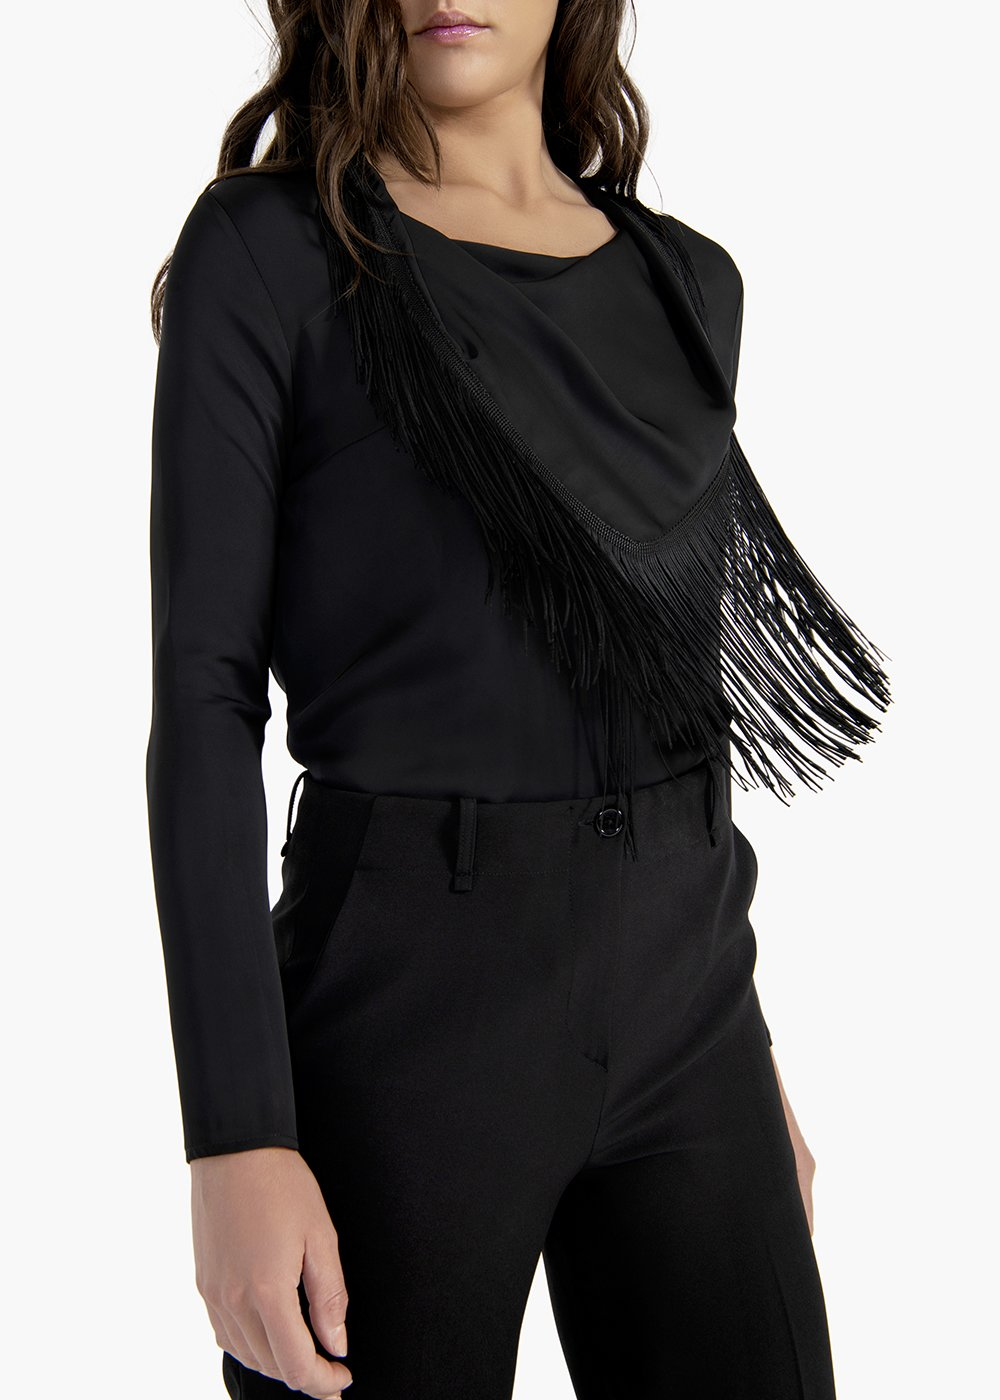 Sabry T-shirt in fluid fabric with V-neck and removable fringes - Black - Woman